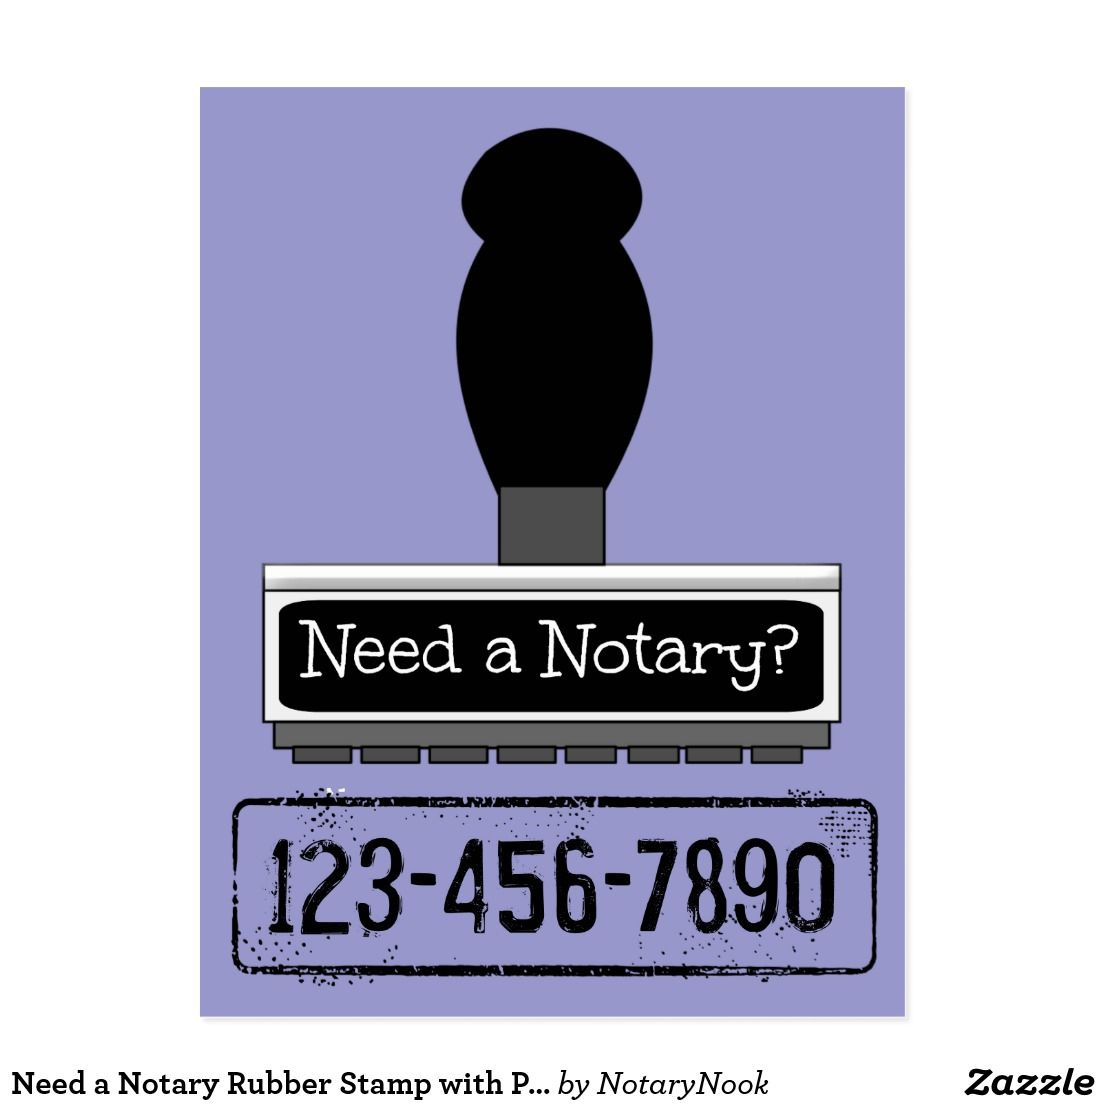 Need a notary rubber stamp with phone number postcard